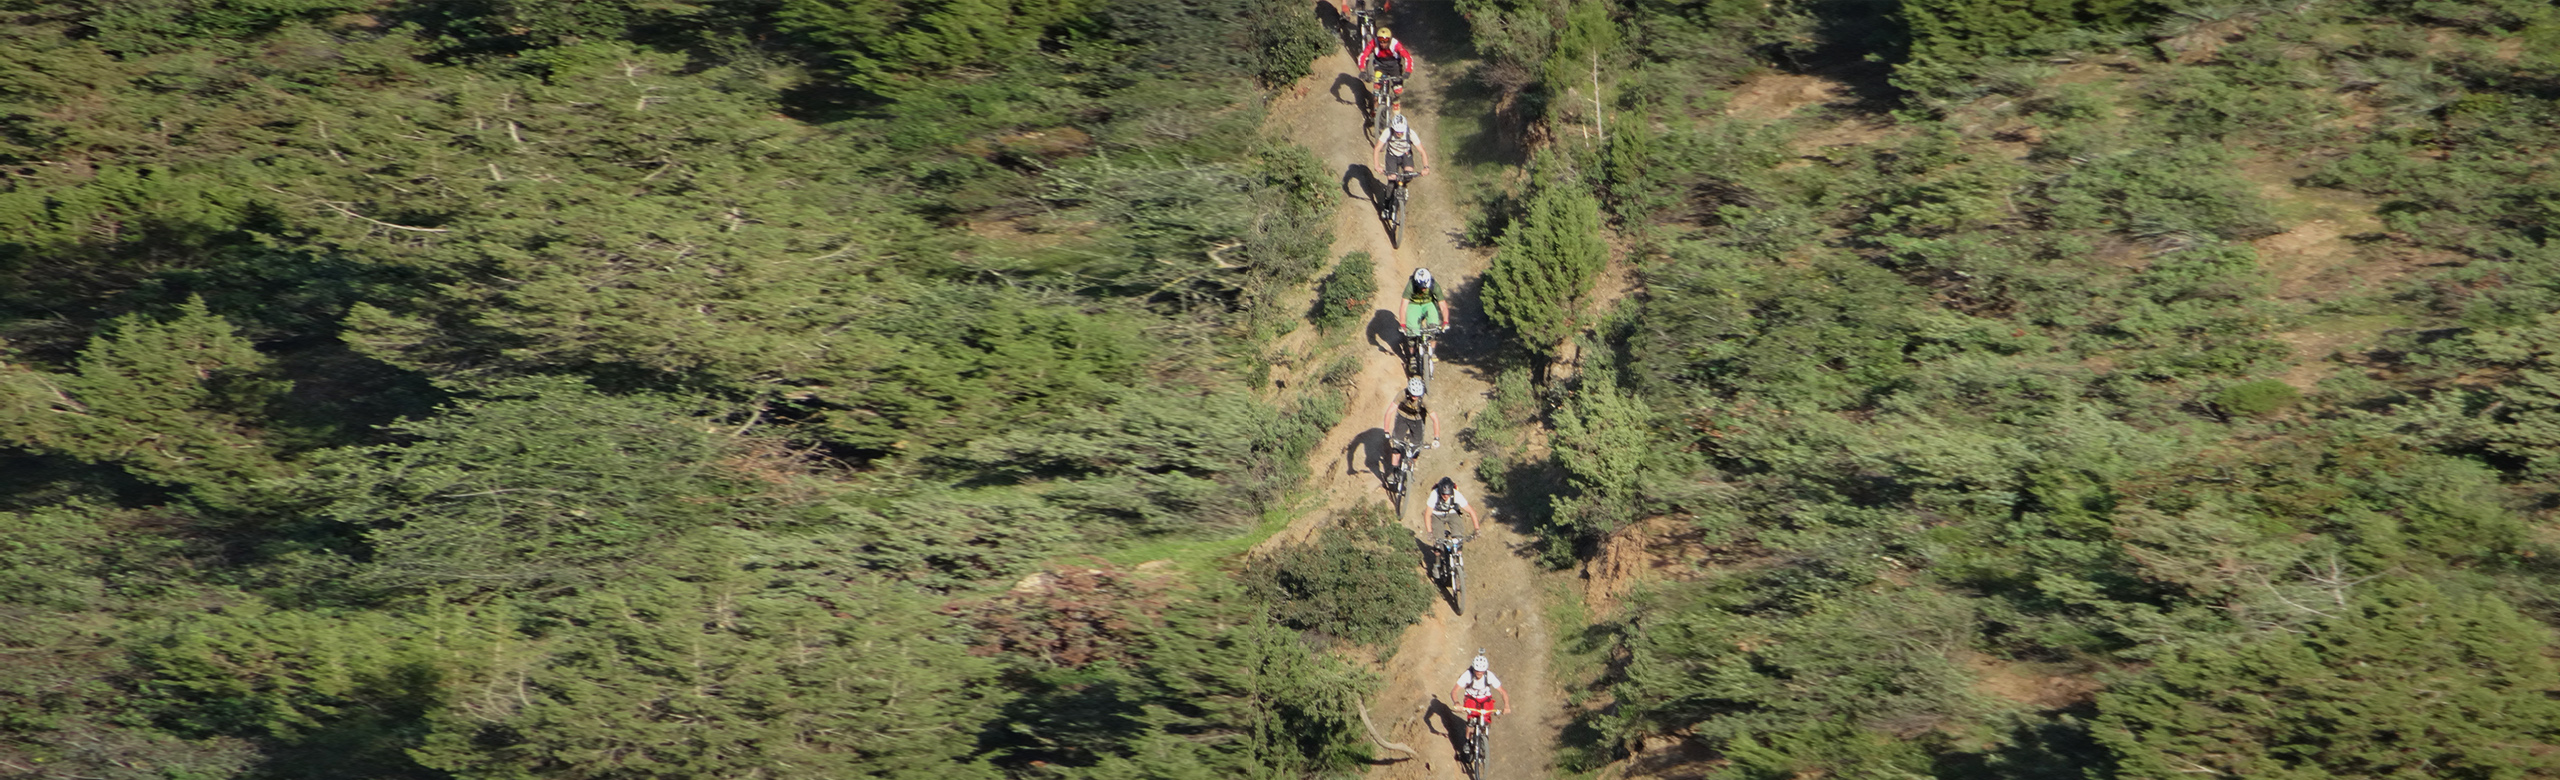 We know the best singletracks